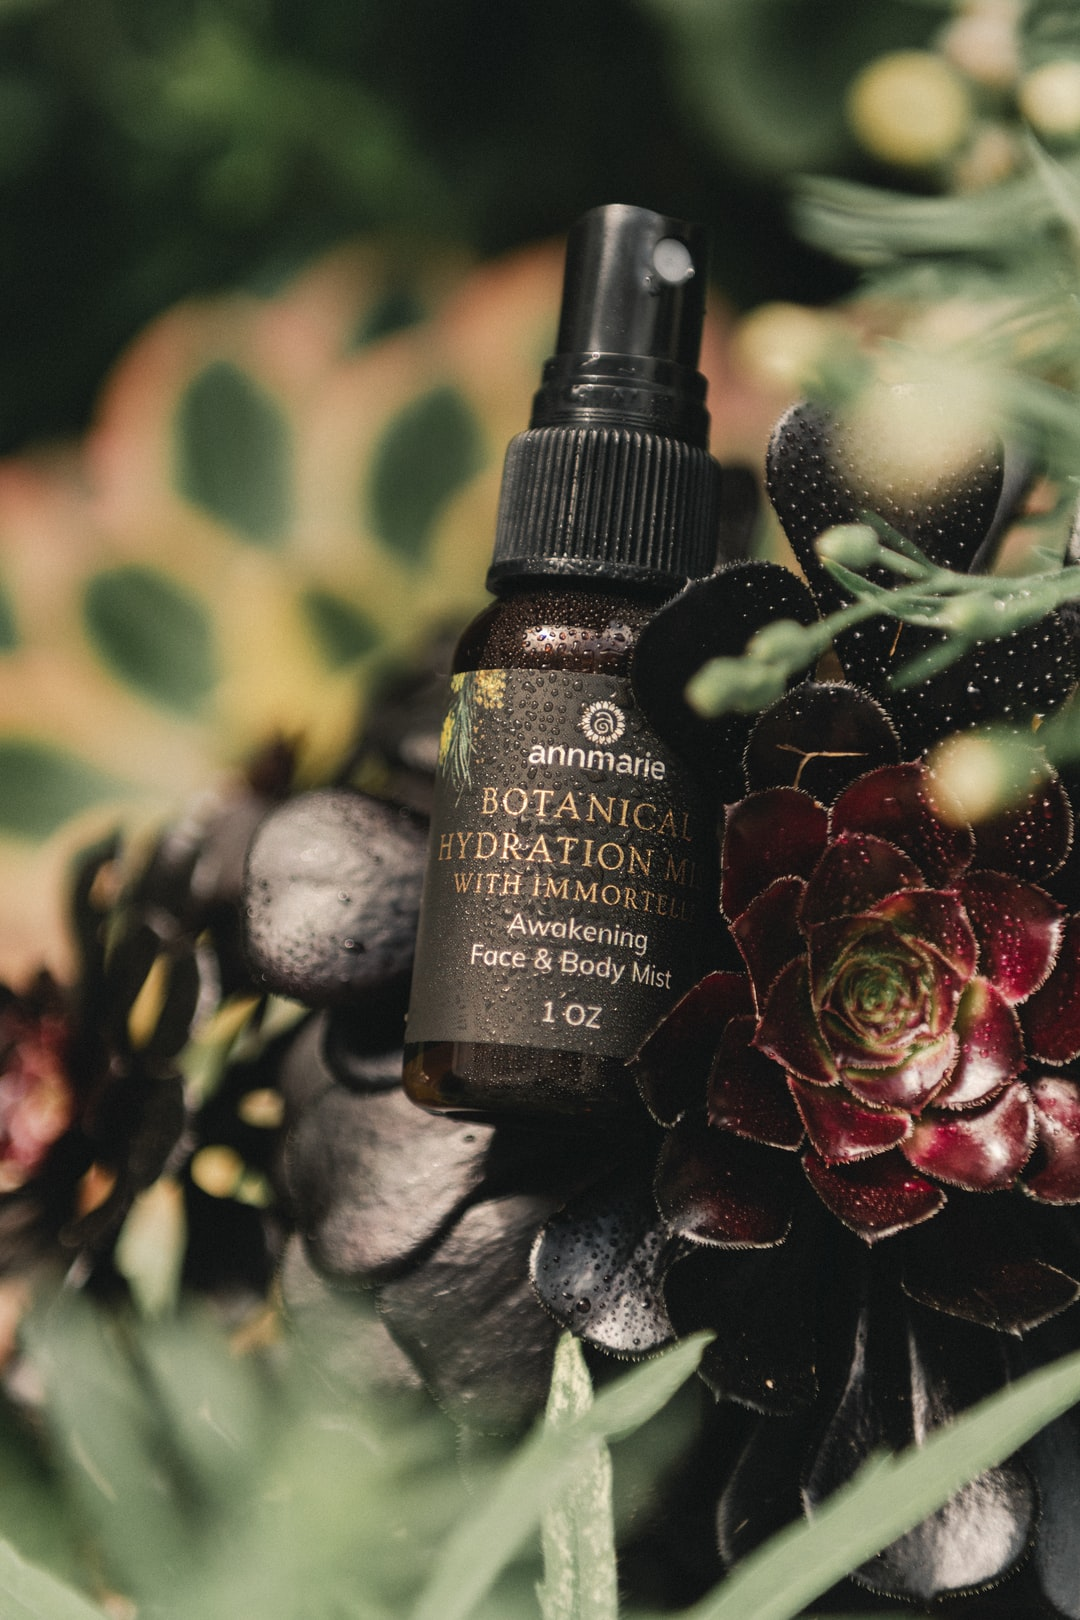 Organic and wildcrafted skin care by annmariegianni.com botanical hydration mist with immortelle